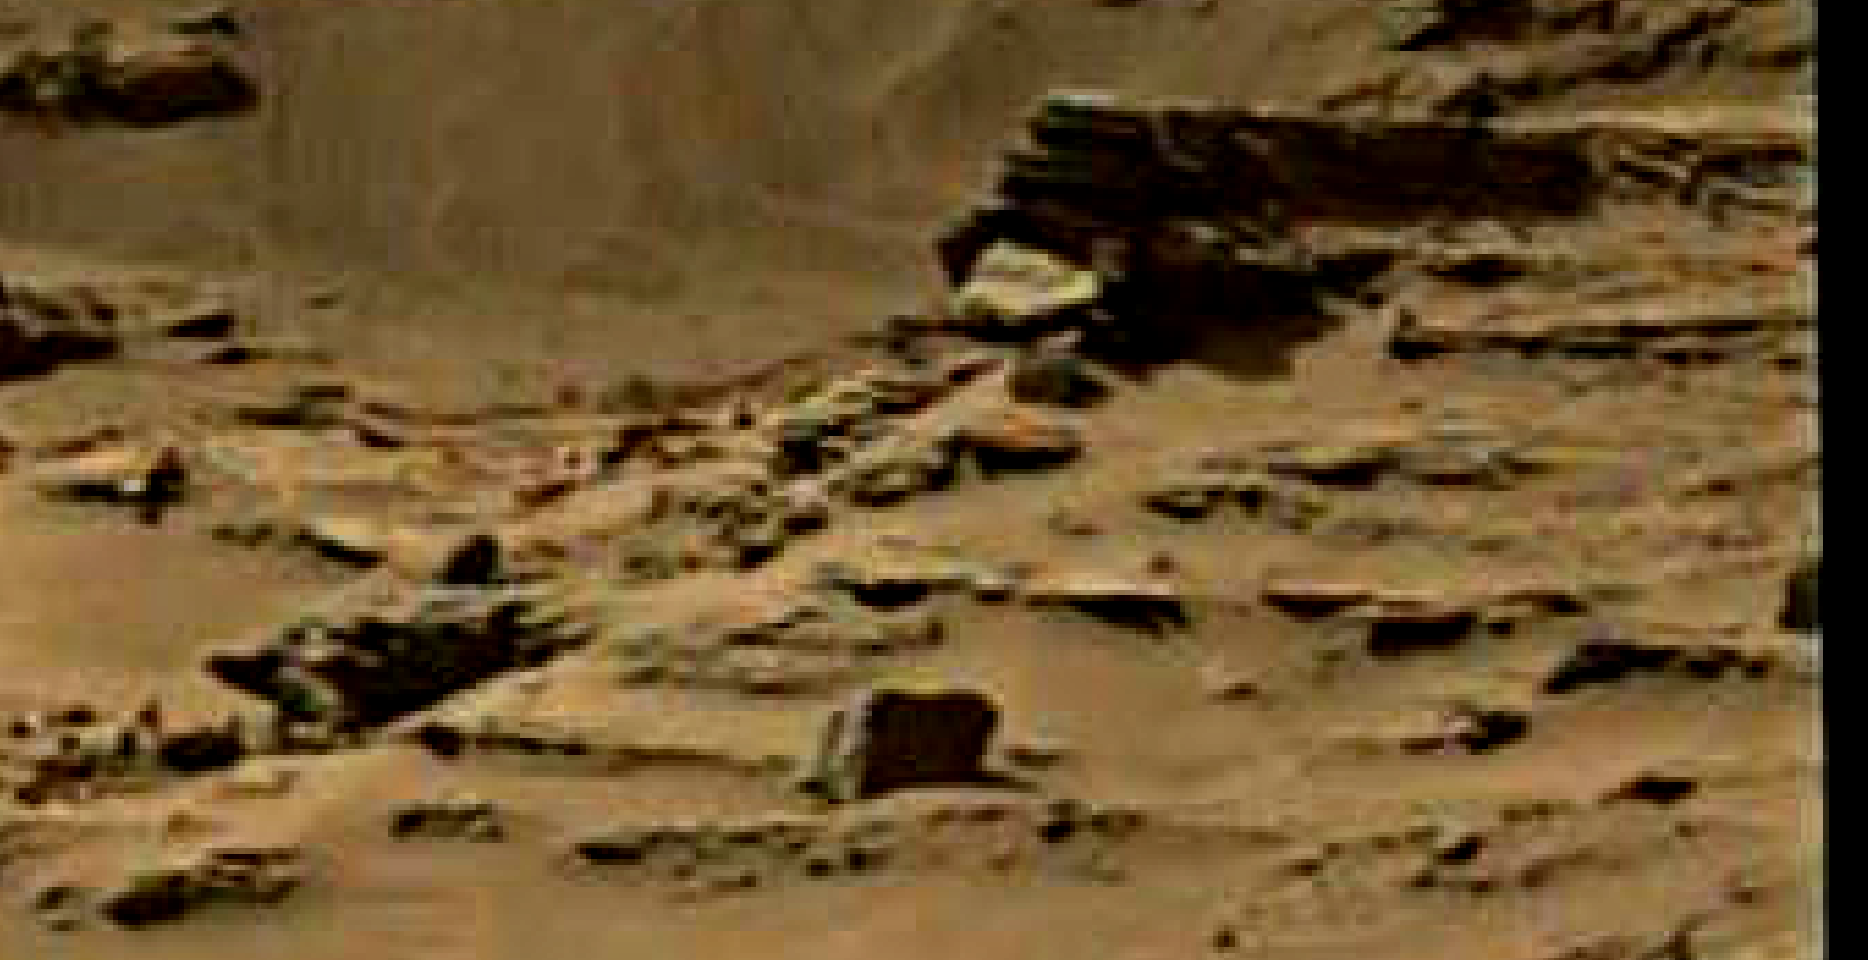 mars sol 1344 anomaly-artifacts 6 was life on mars